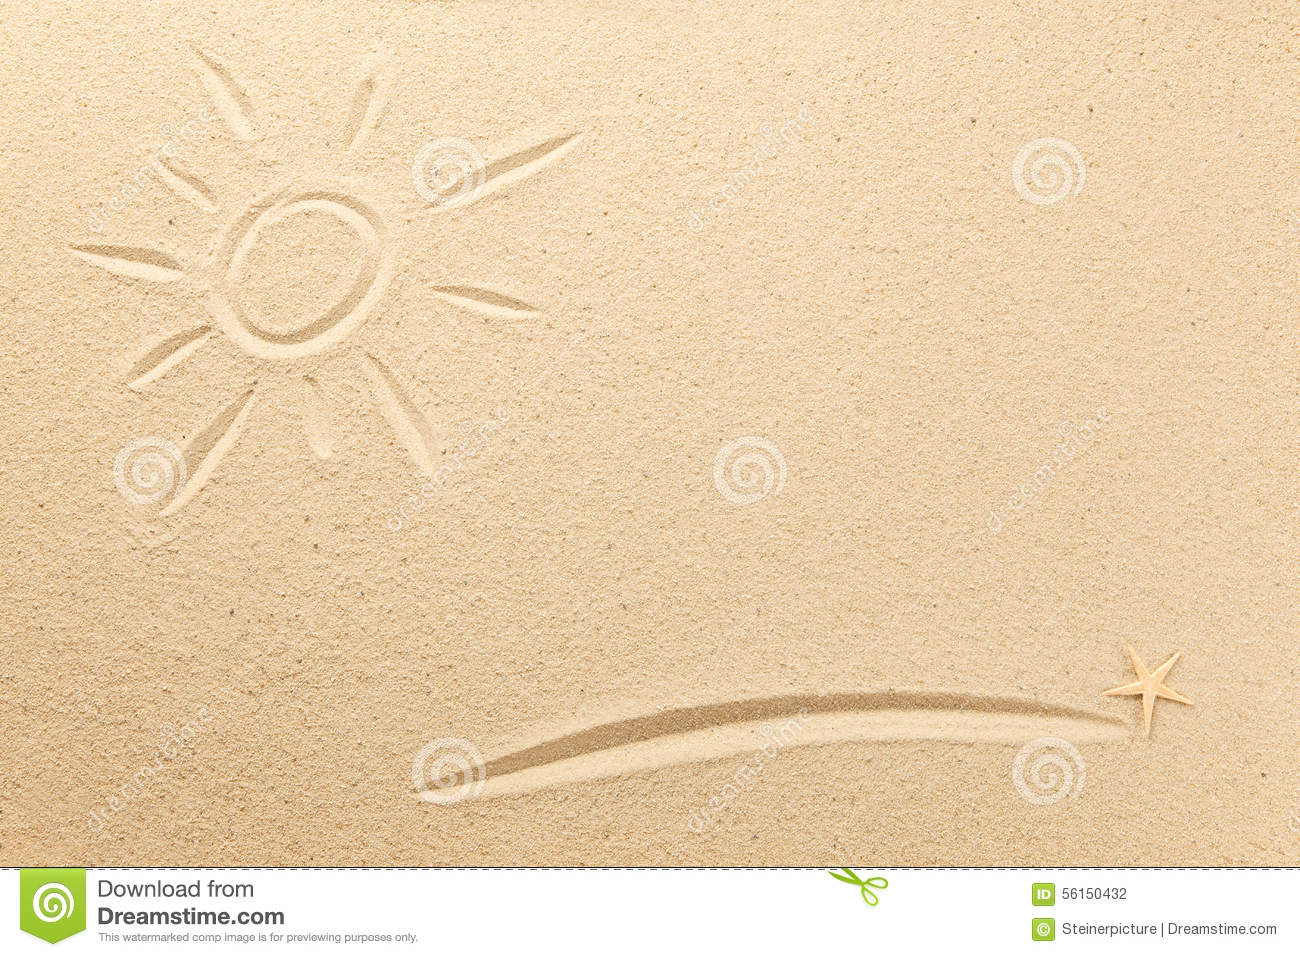 Text And Symbols In The Sand Stock Photo Image Of Symbol Sign